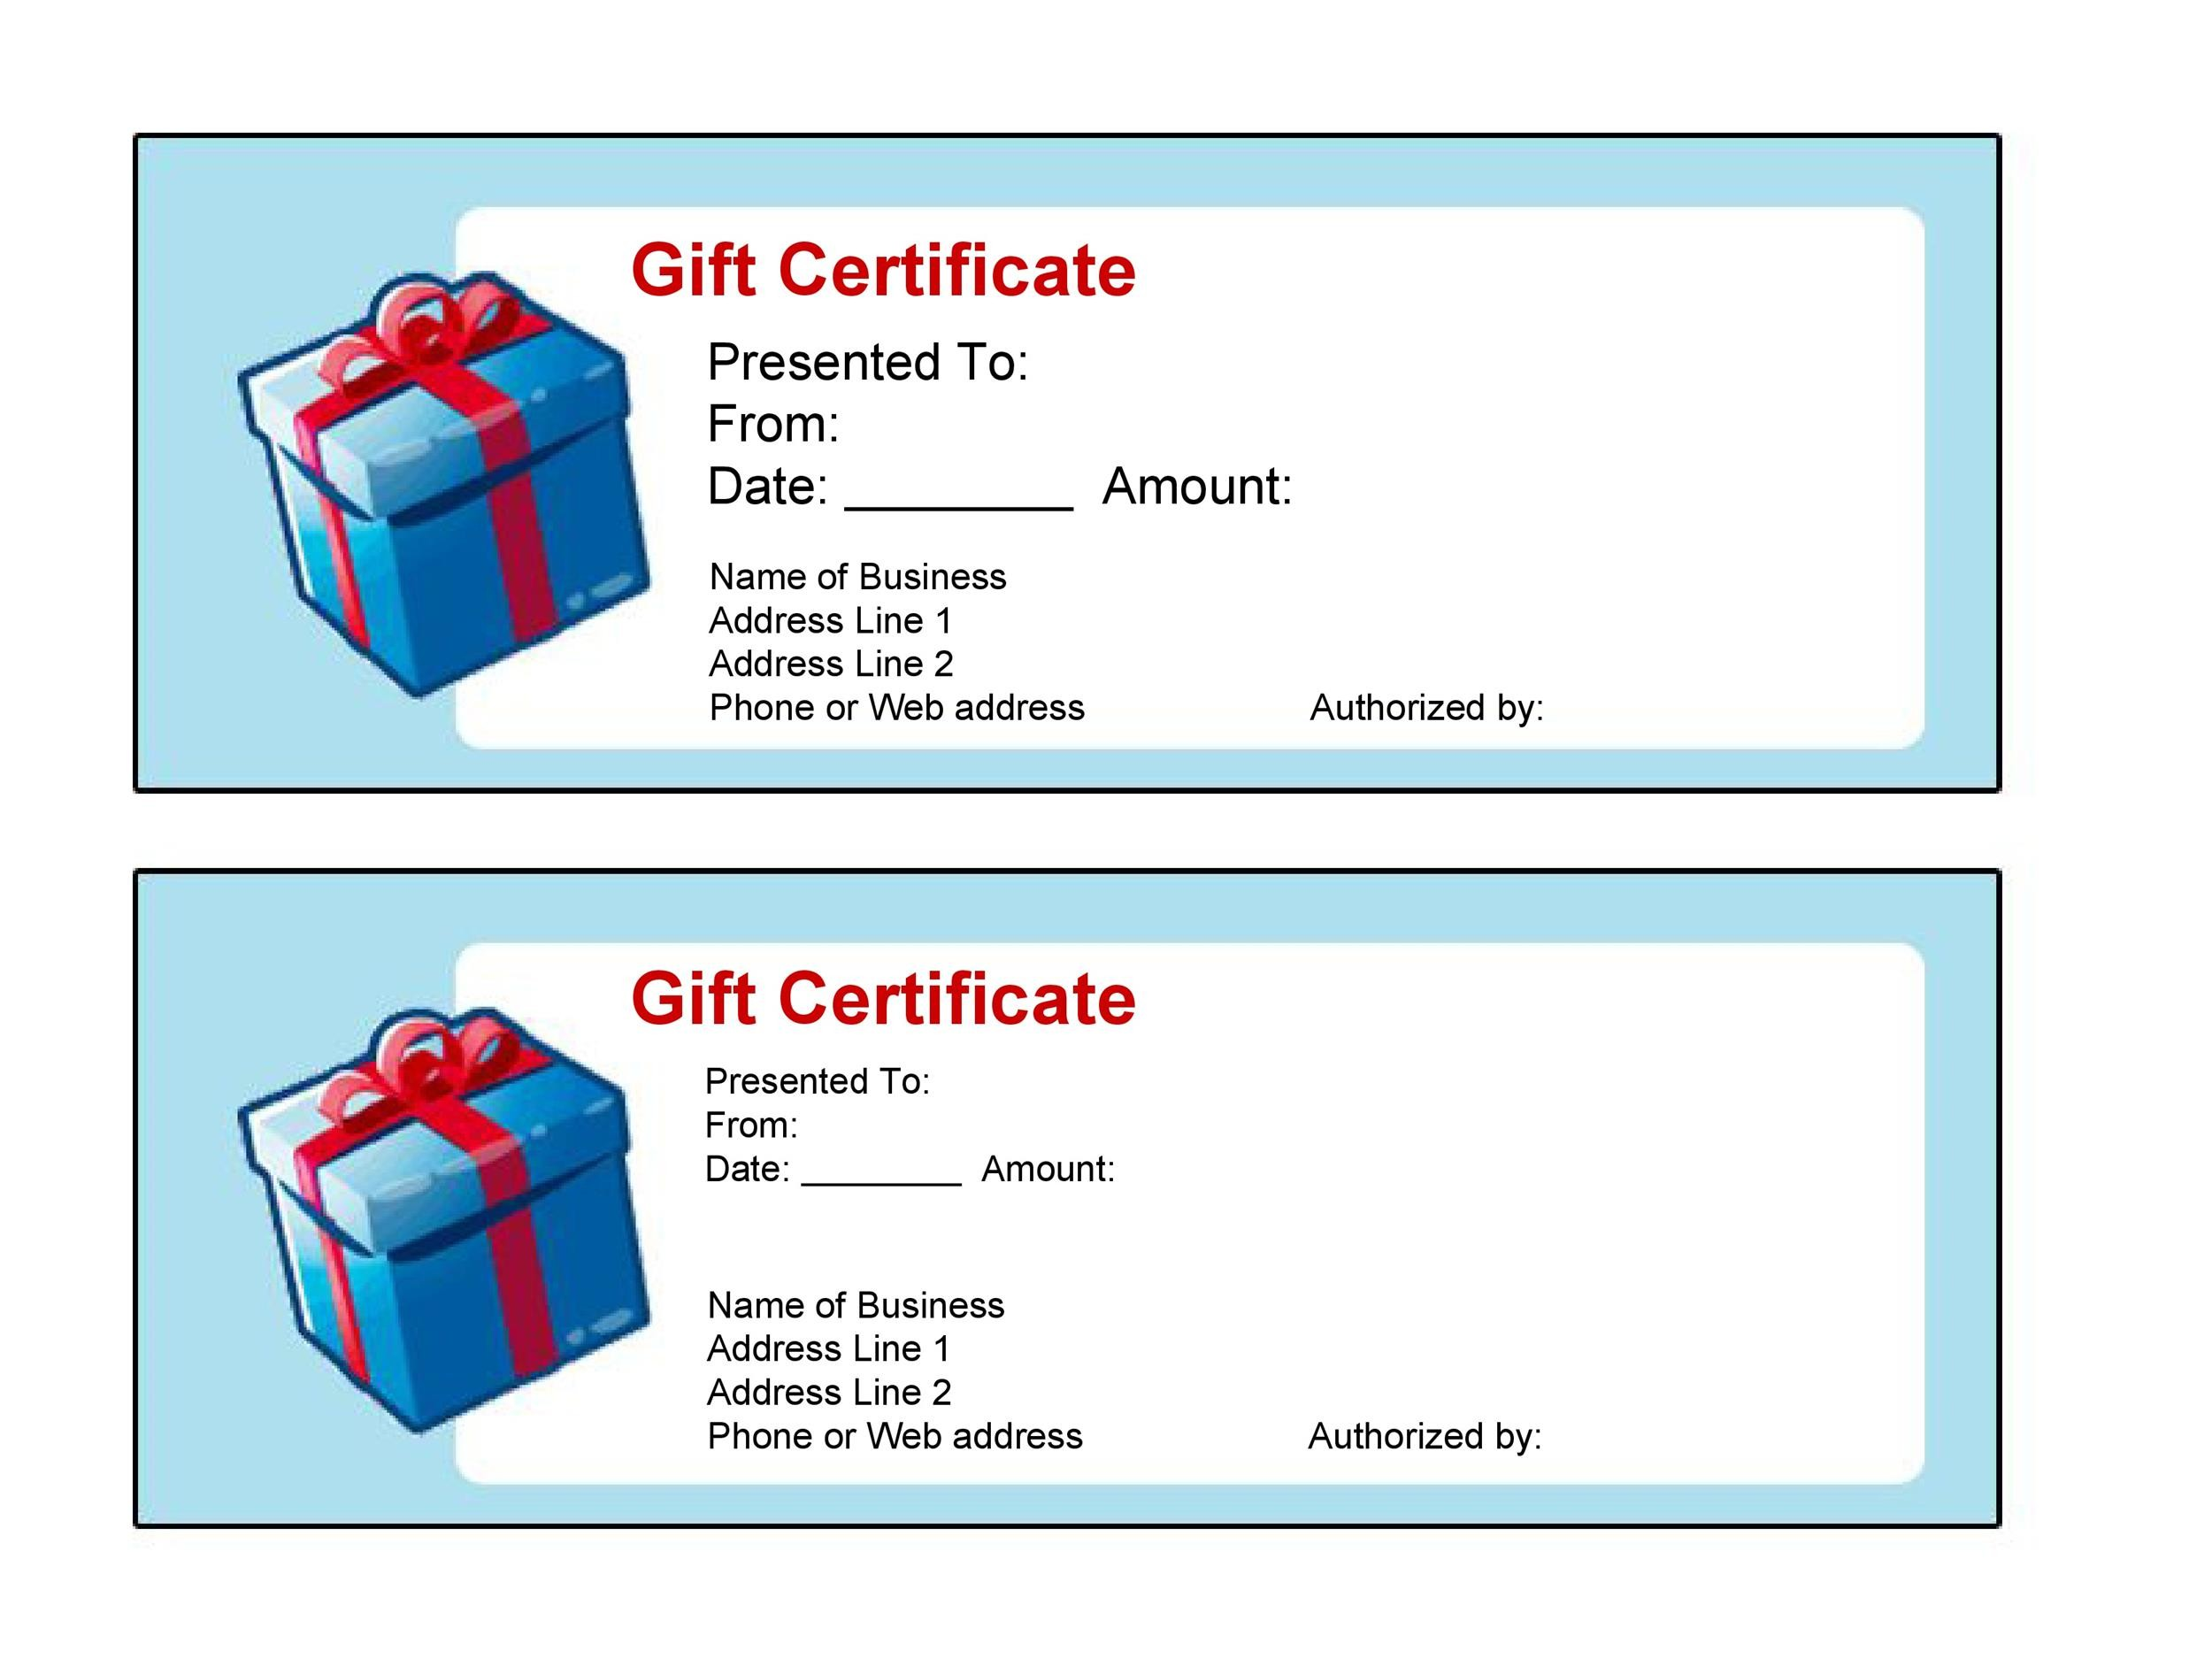 Free Gift Certificate Templates Template Lab - Word gift certificate template free download